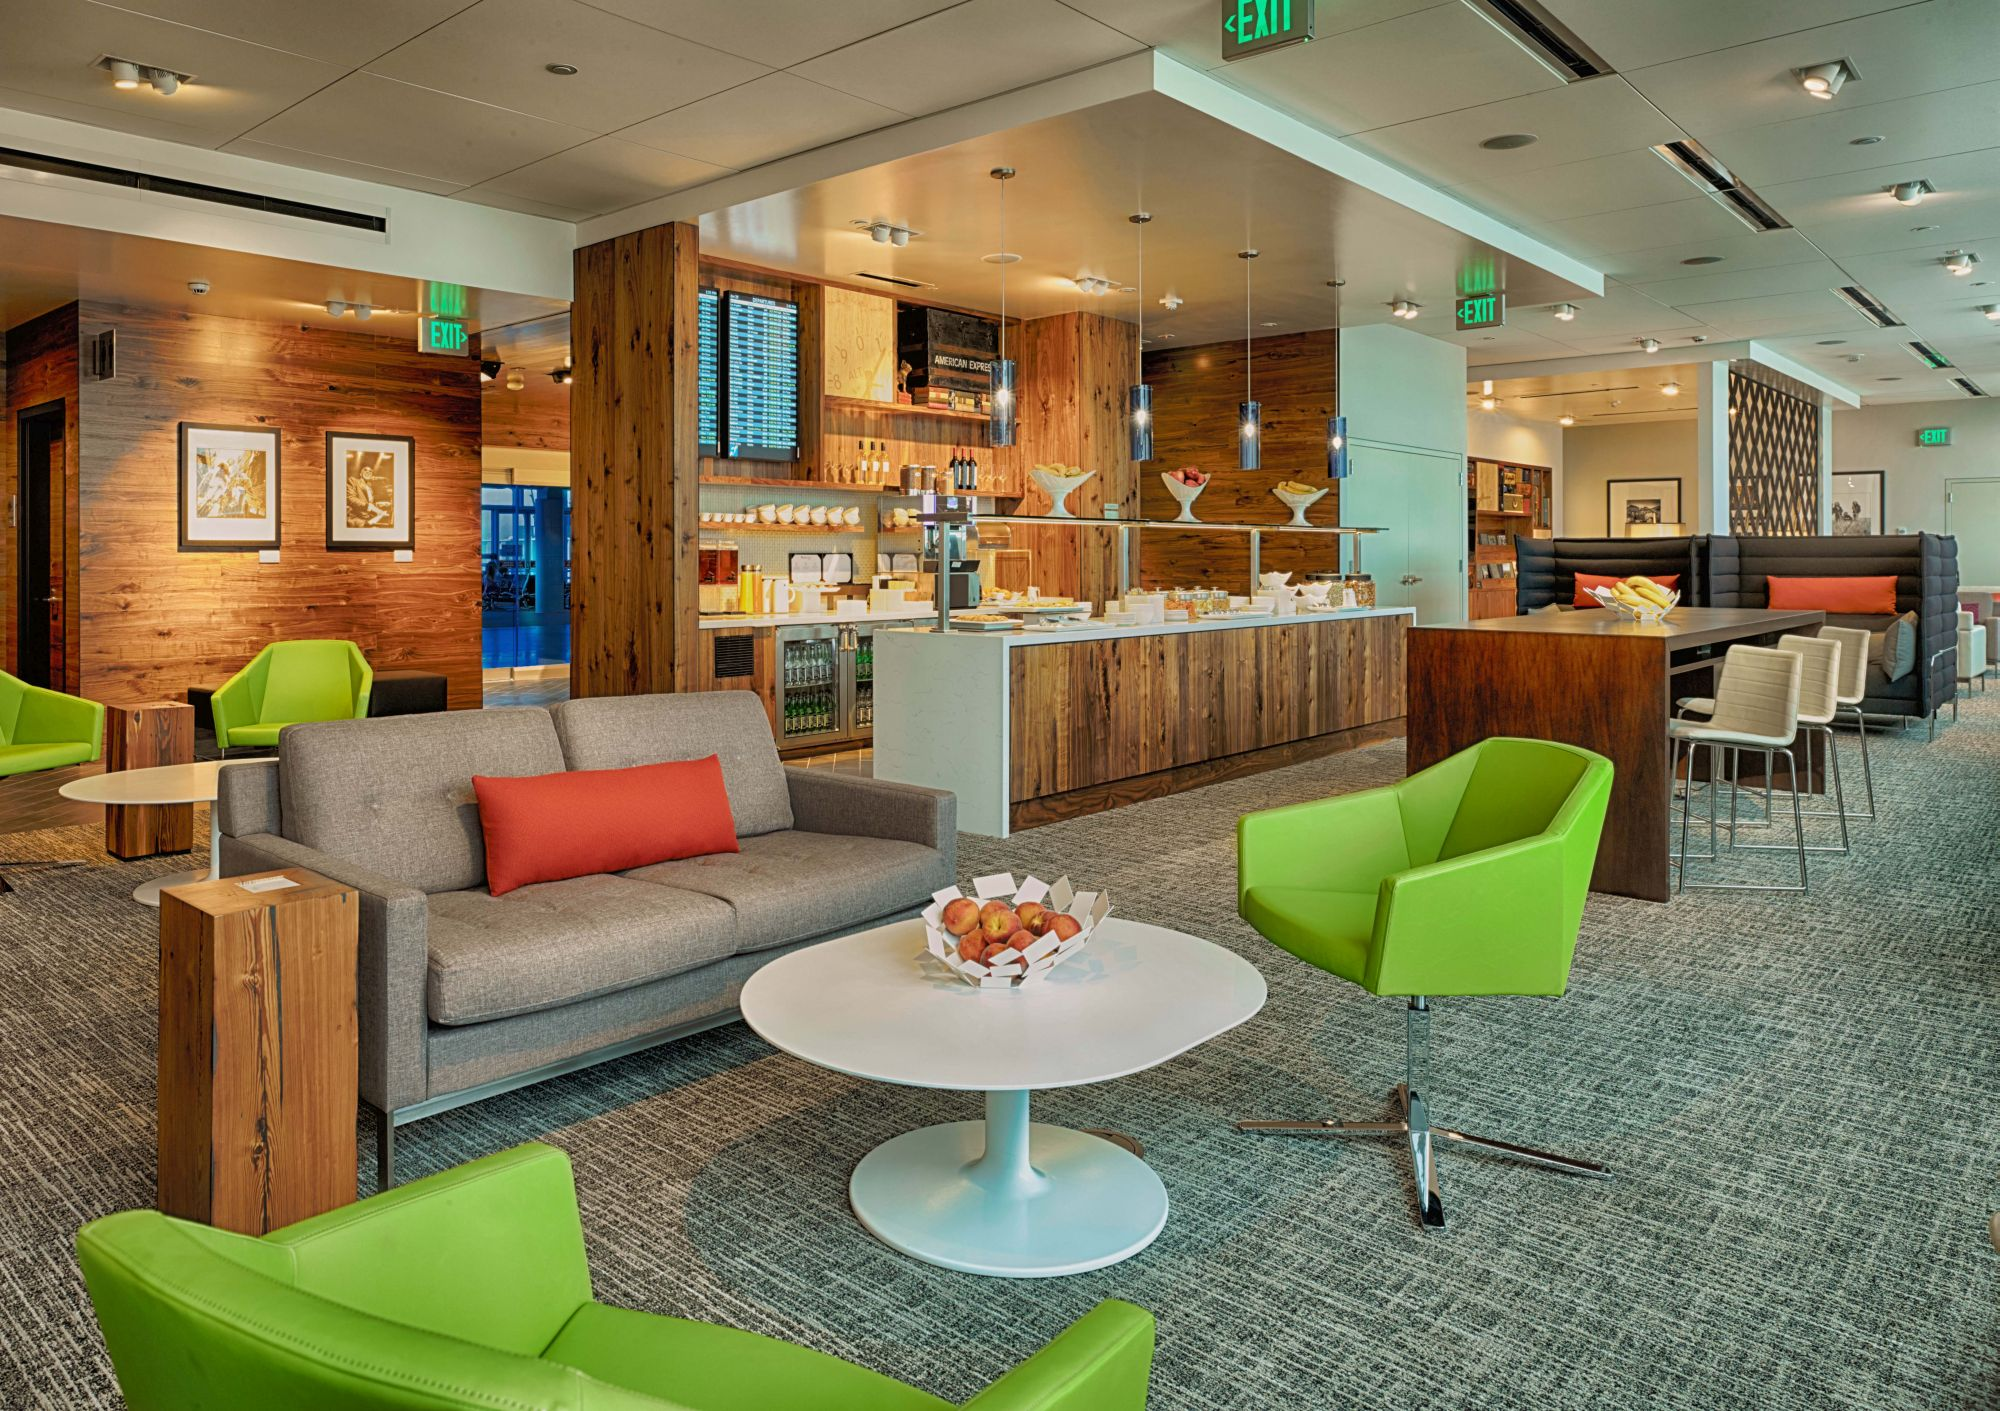 The Centurion Studio at Sea-Tac is finally here